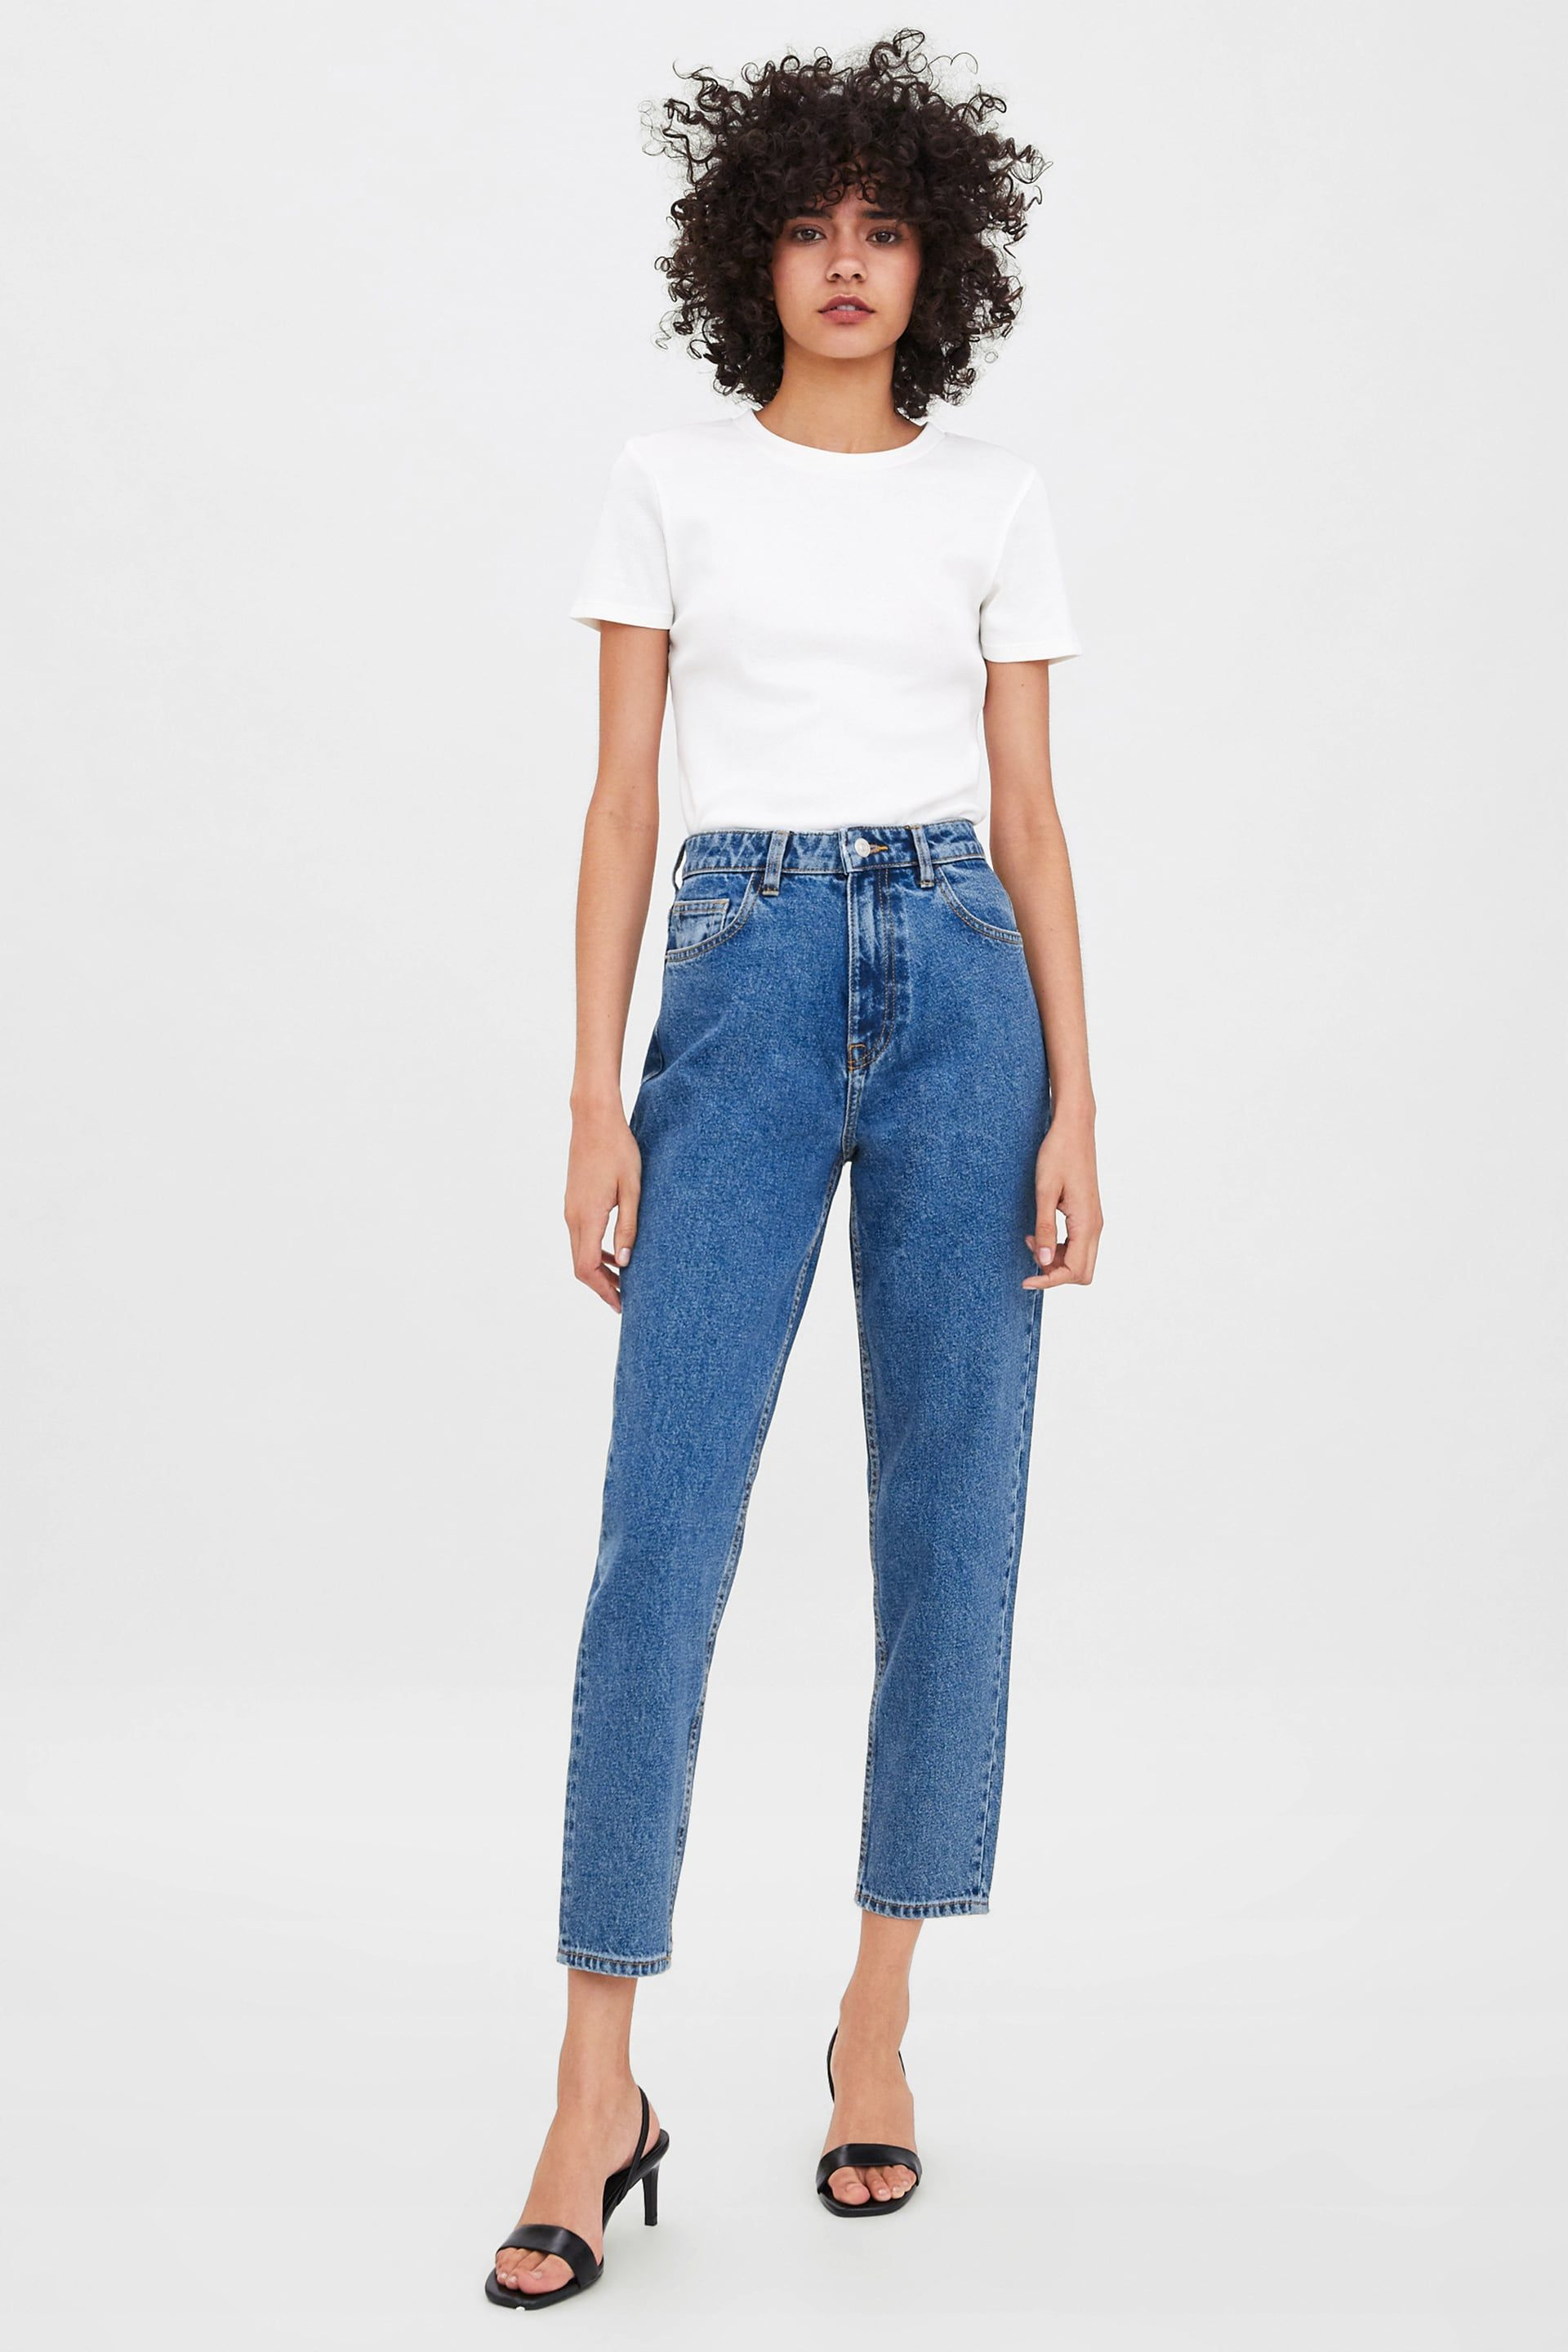 76dafdd0a4 EDITED MOM JEANS - NEW IN-TRF | ZARA United Kingdom | Quiero. in ...